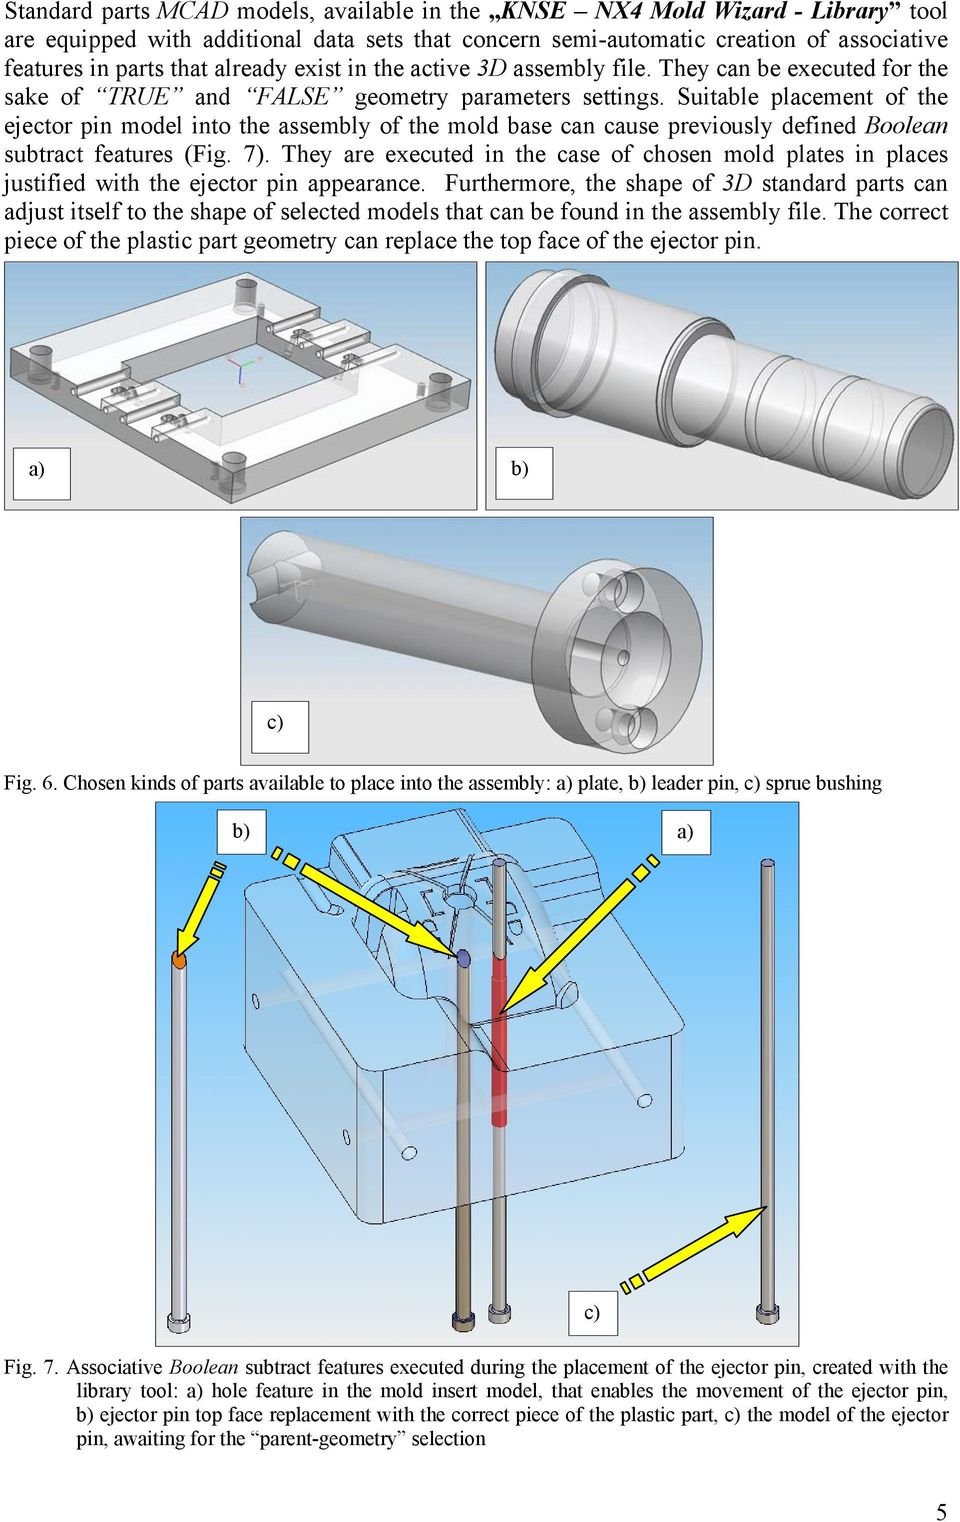 Digital library of chosen injection mold standard parts